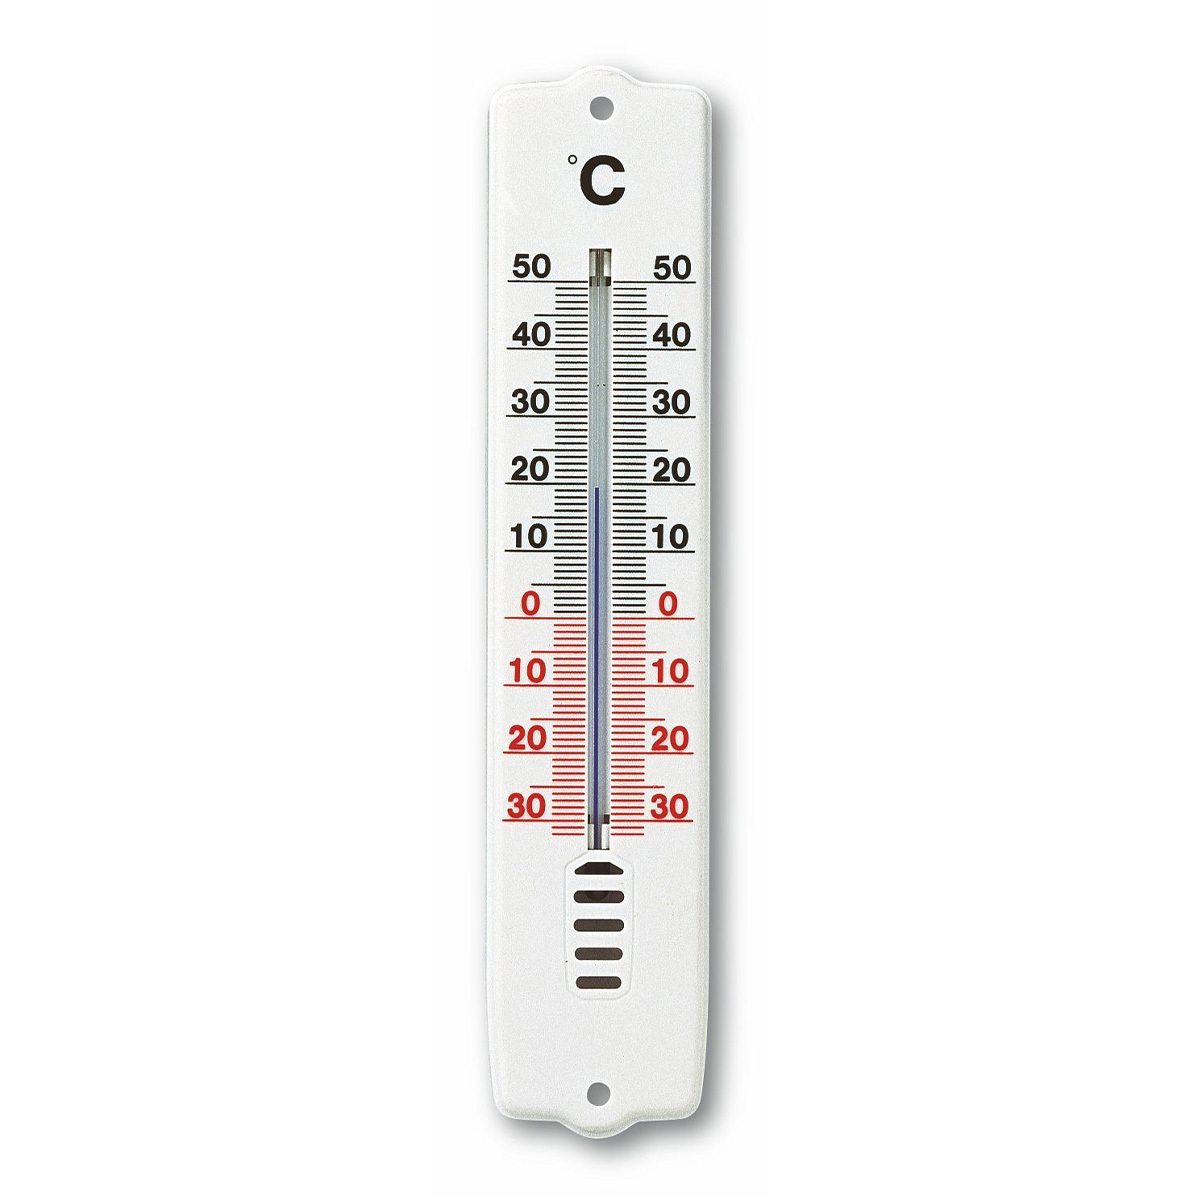 12-3009-analoges-innen-aussen-thermometer-1200x1200px.jpg